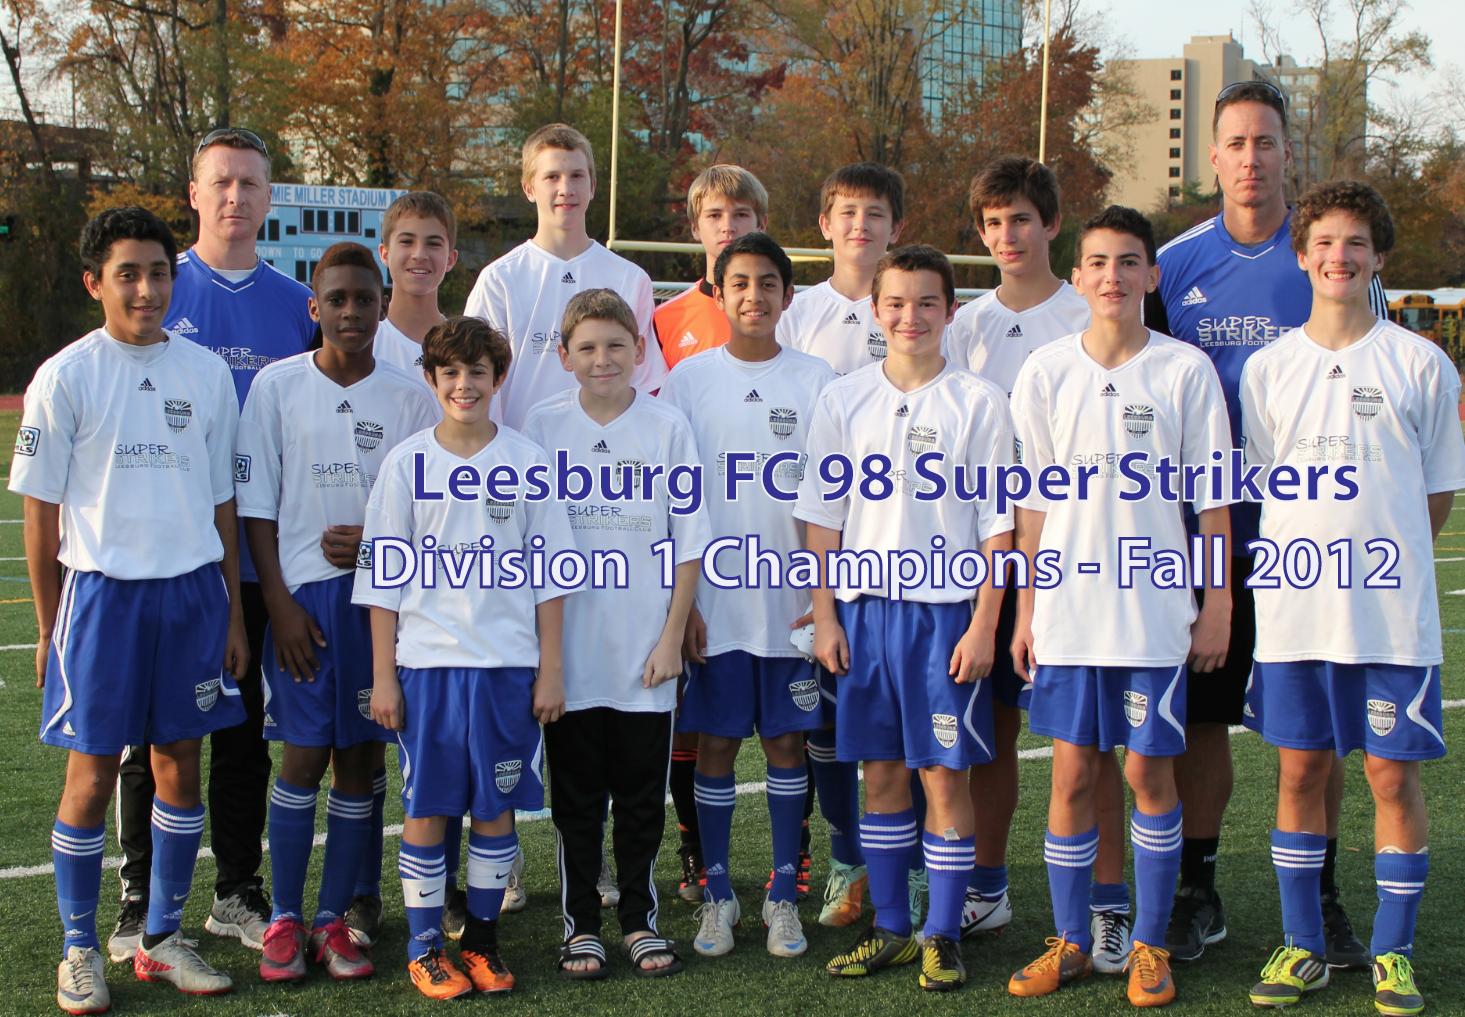 6de343ee3 Six Leesburg FC teams take top spots in NCSL